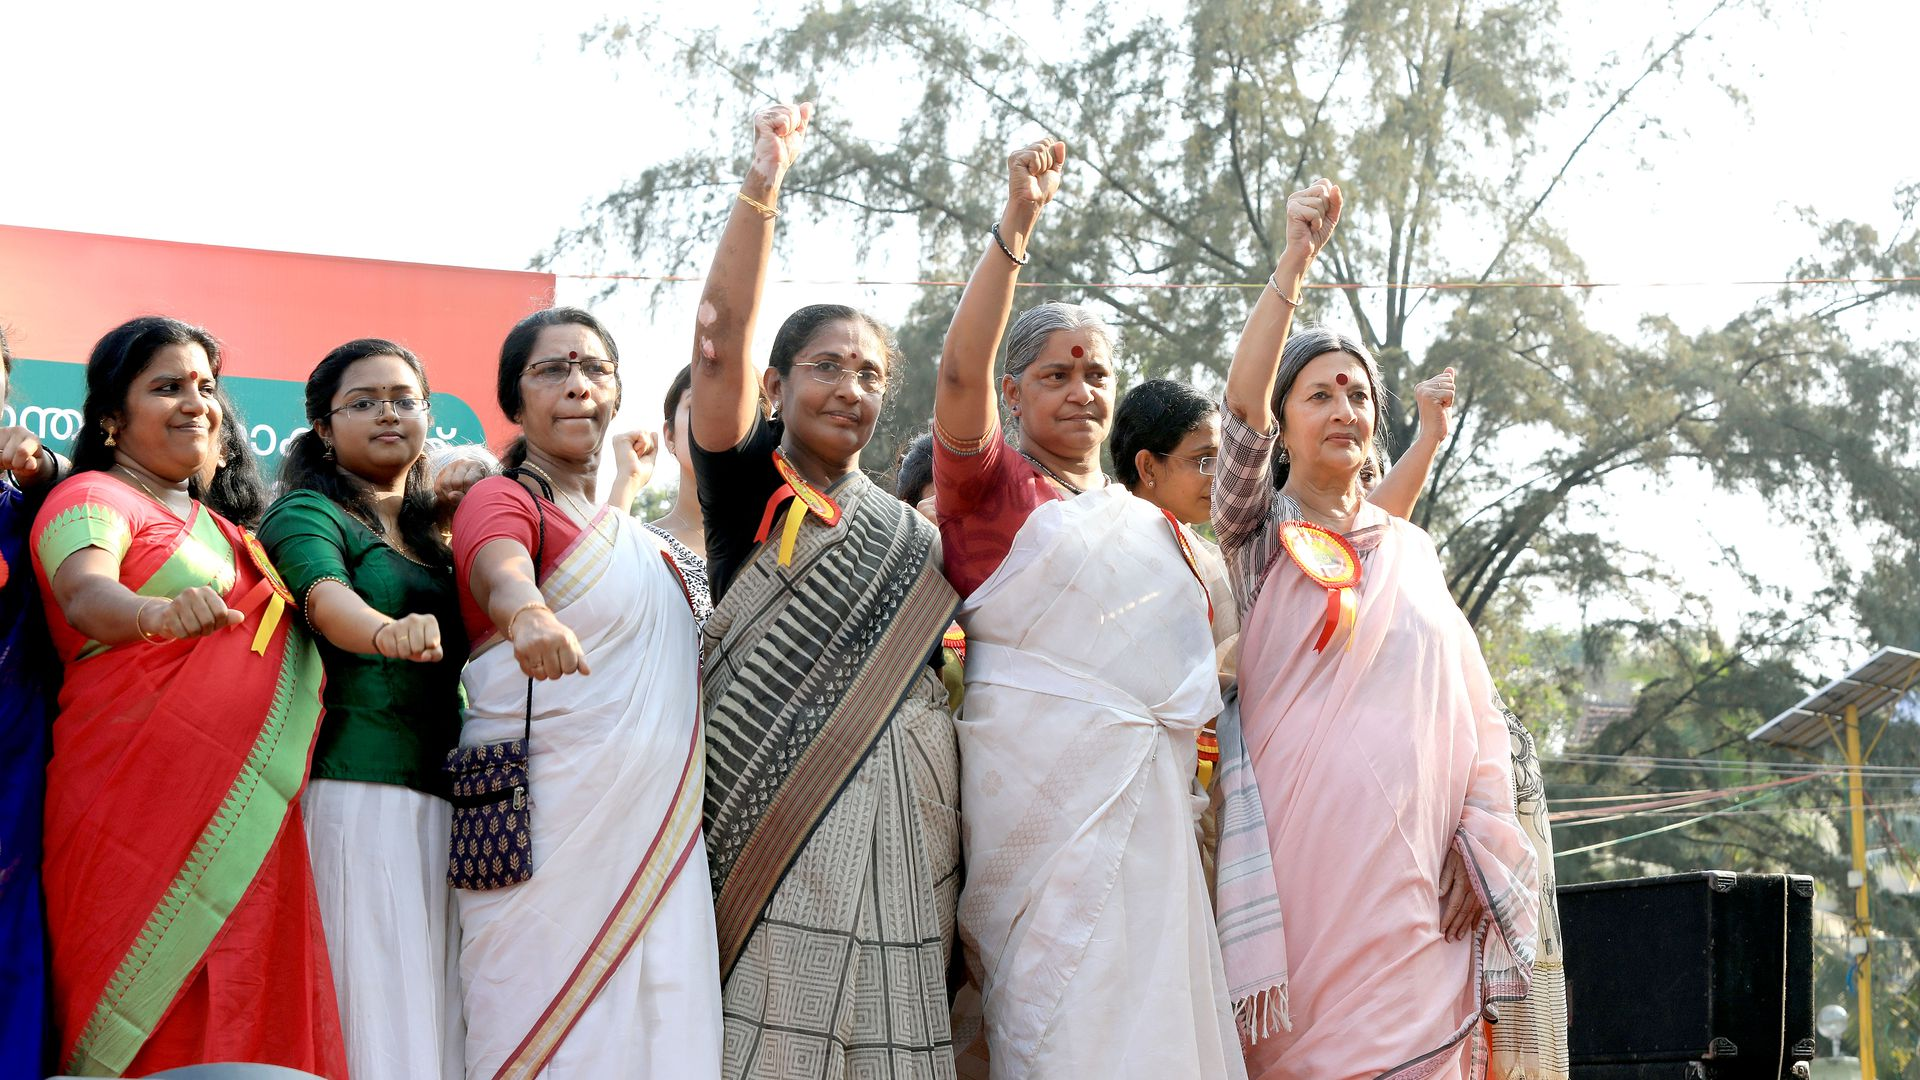 Women take oath as they gather to participate in the 620 km-long 'Women's Wall' against communalism and gender discrimination